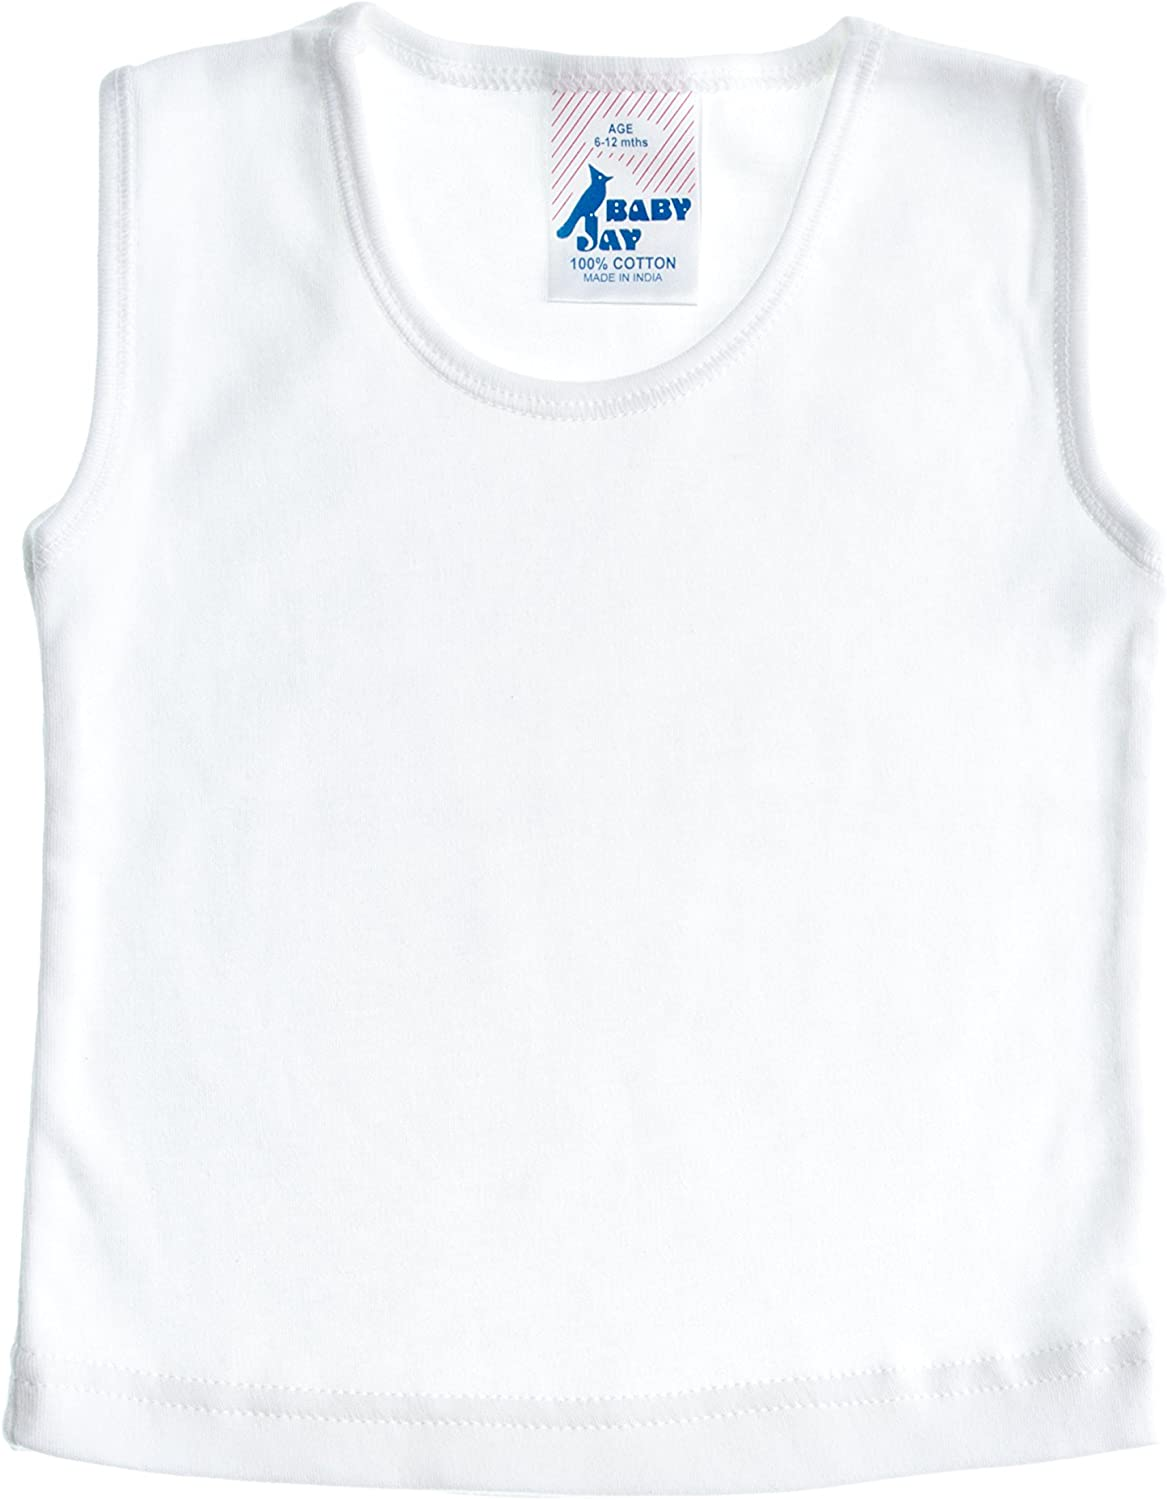 Boys and Girls Tee White Soft Cotton Sleeveless T-Shirt Undershirt Baby Jay Baby and Toddler Tank Top 5 Pack